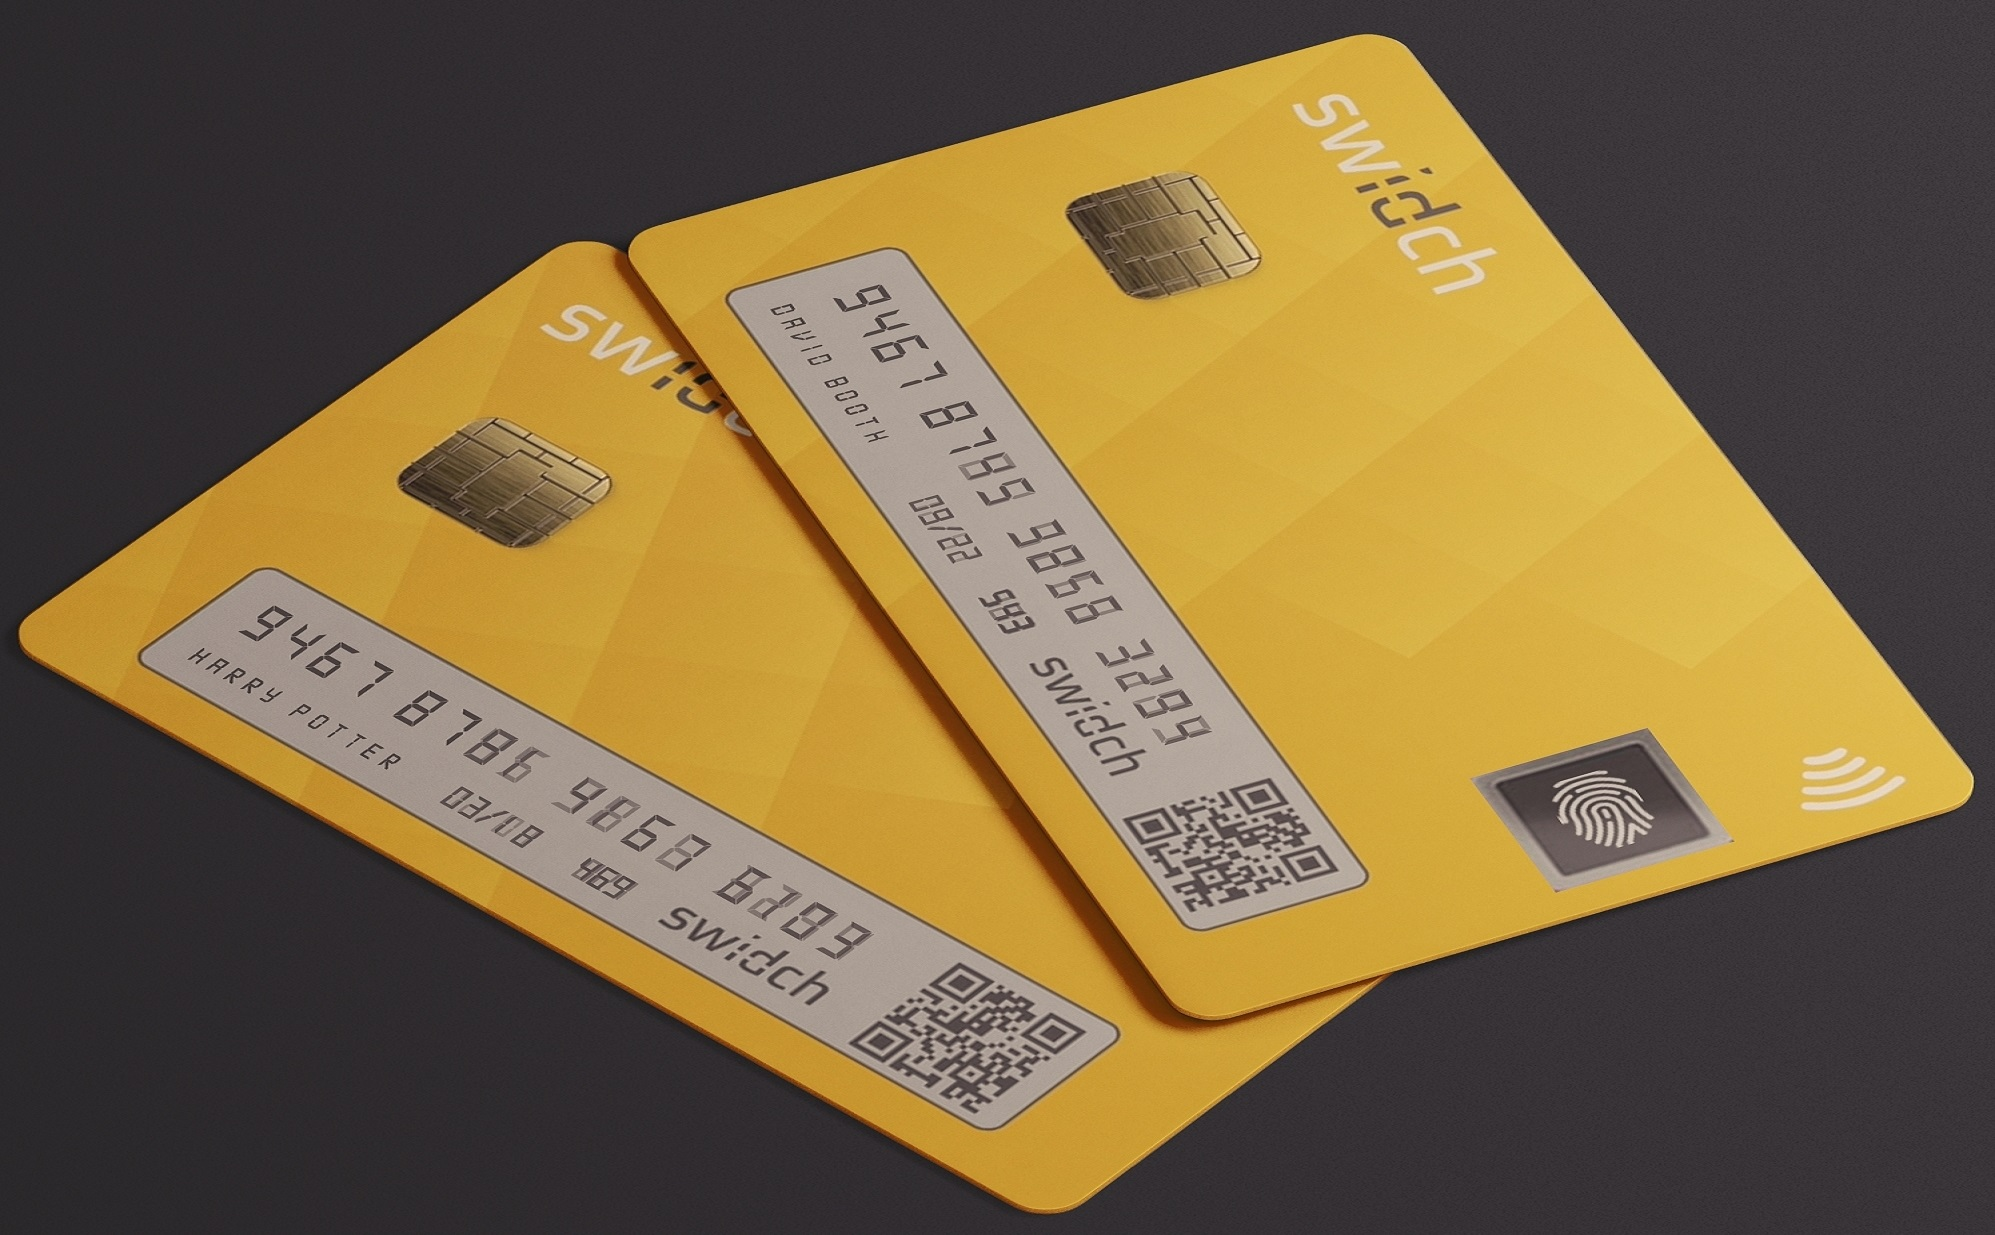 Why numberless cards are not enough to tackle payment fraud